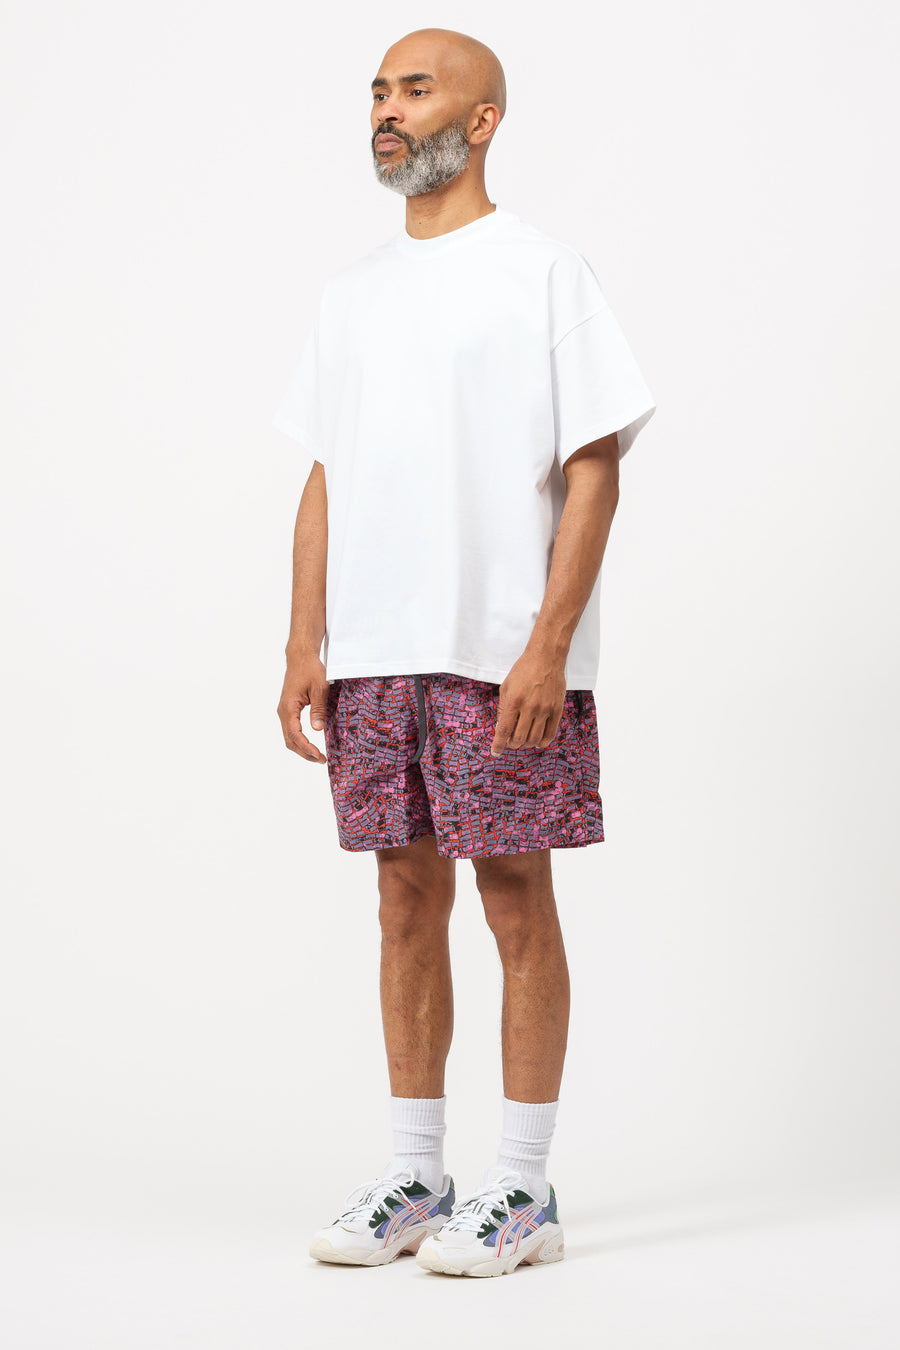 Nike ACG Shorts in Multi/Black - Notre